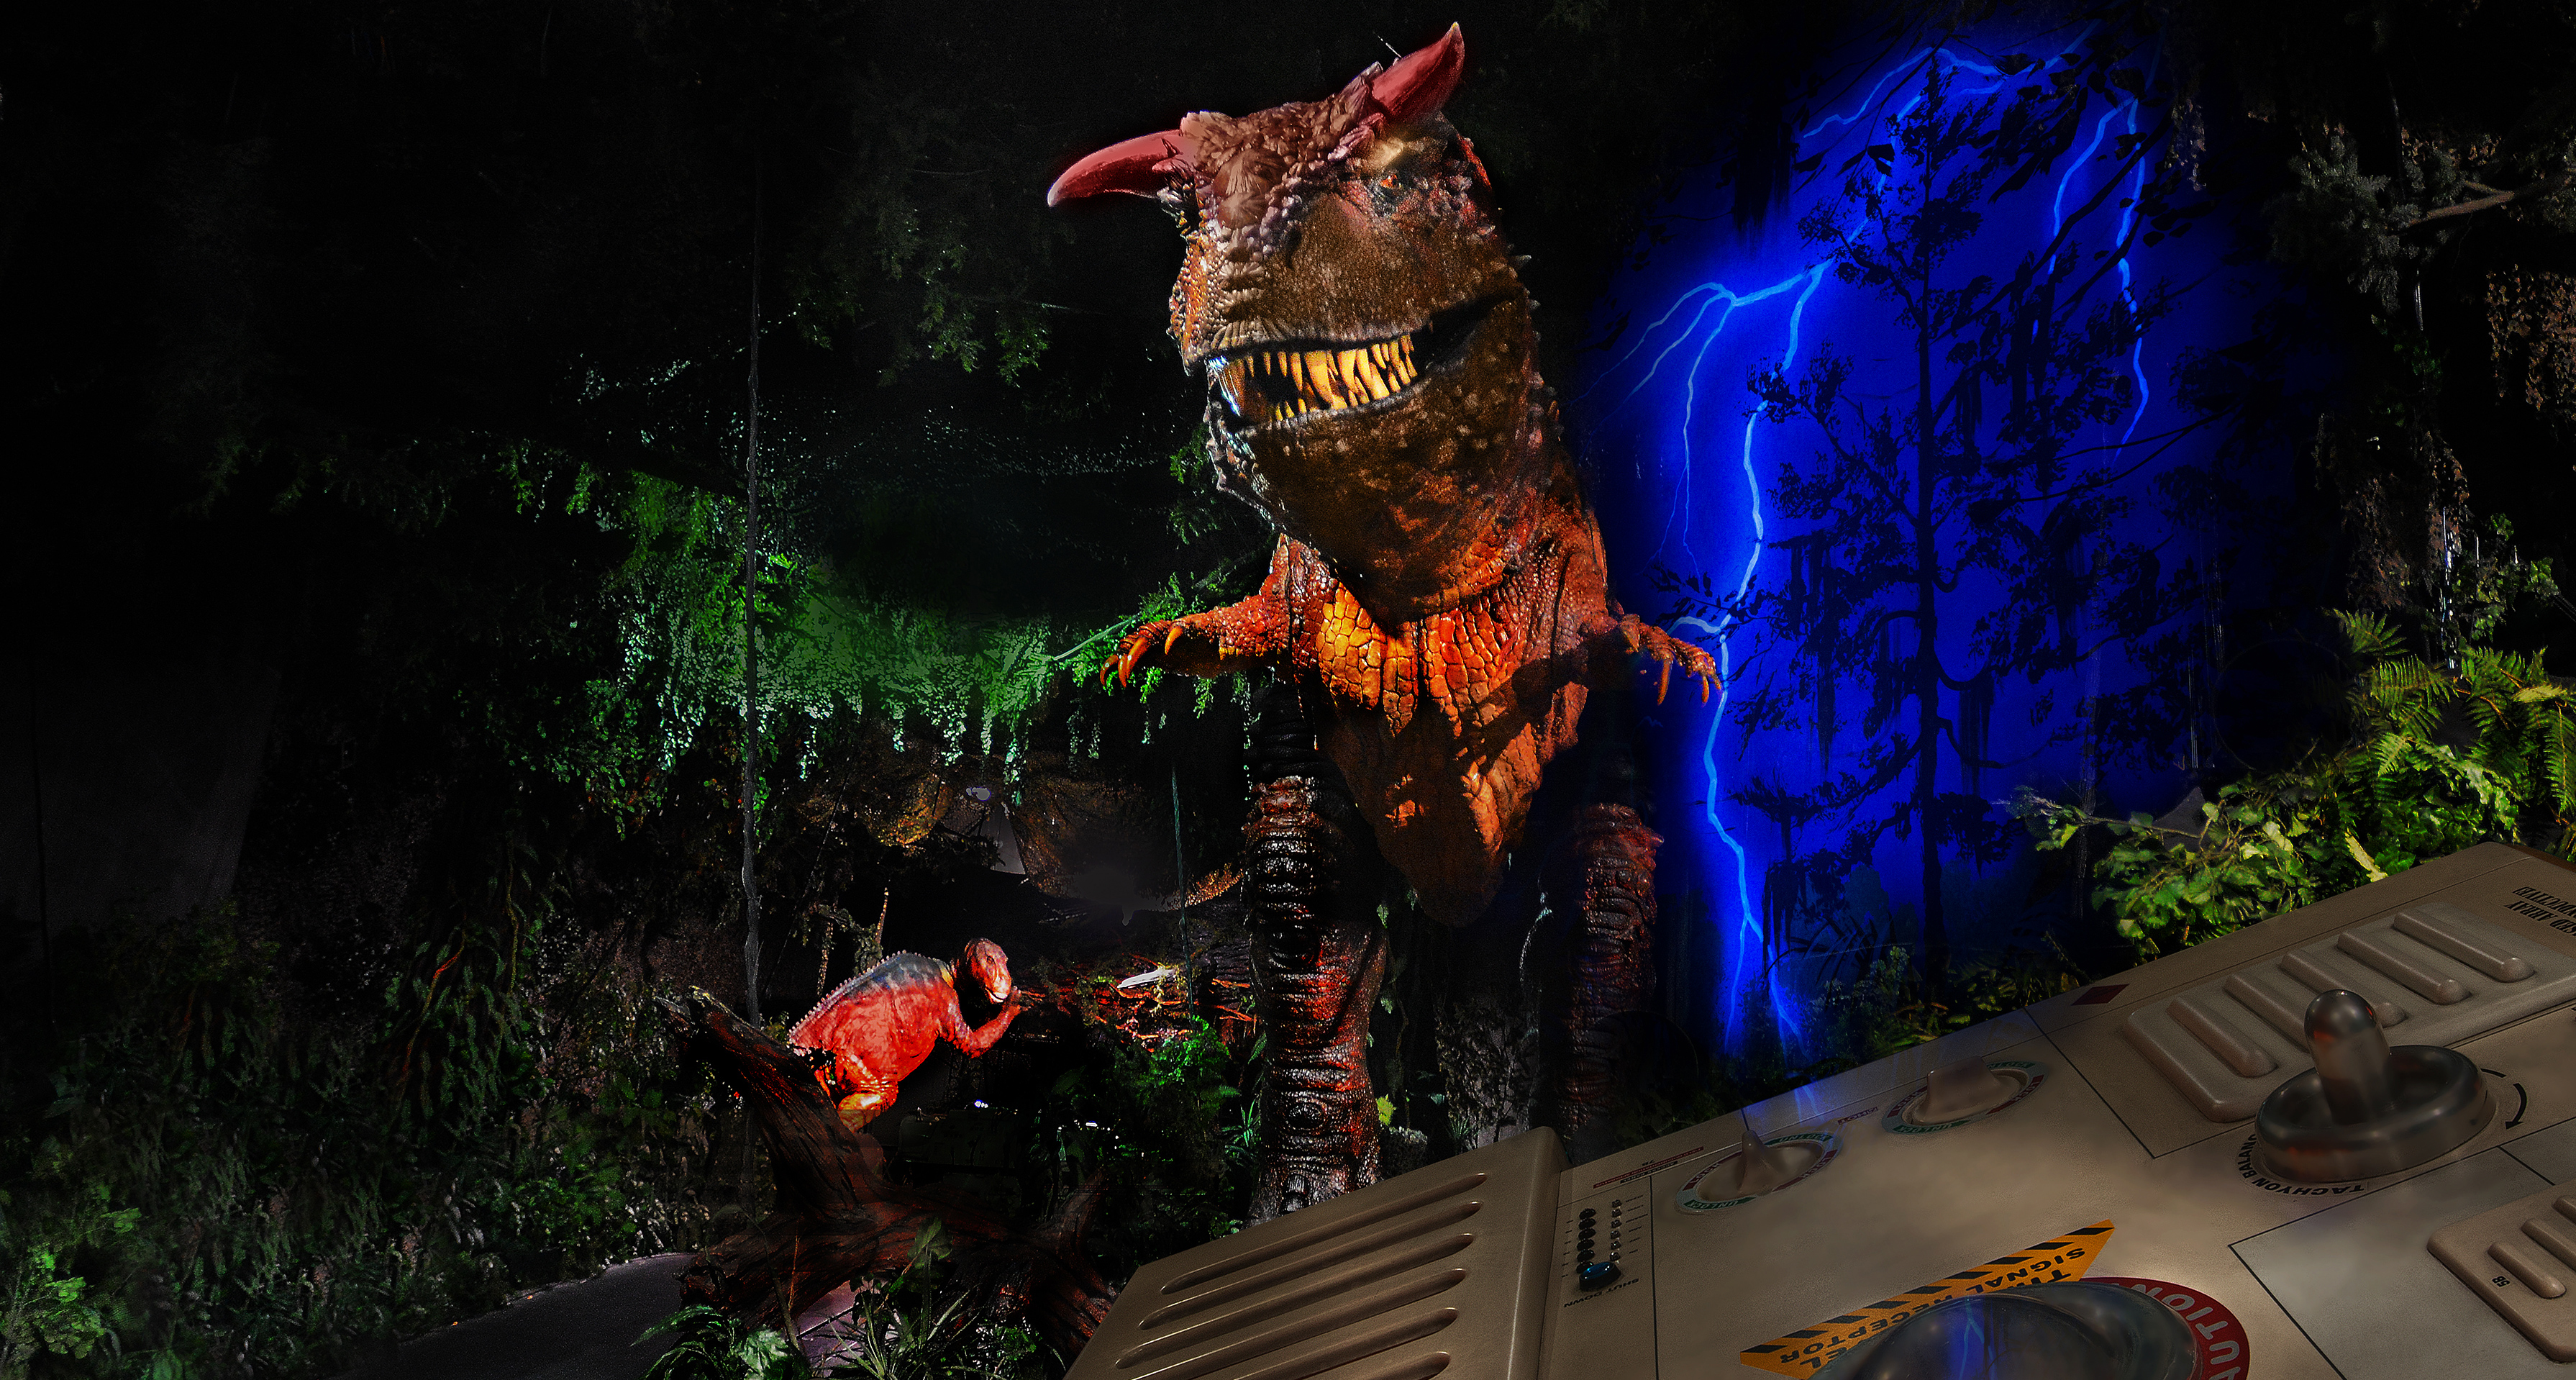 A large carnivorous creature popping out at Guests on DINOSAUR at Disney's Animal Kingdom theme park